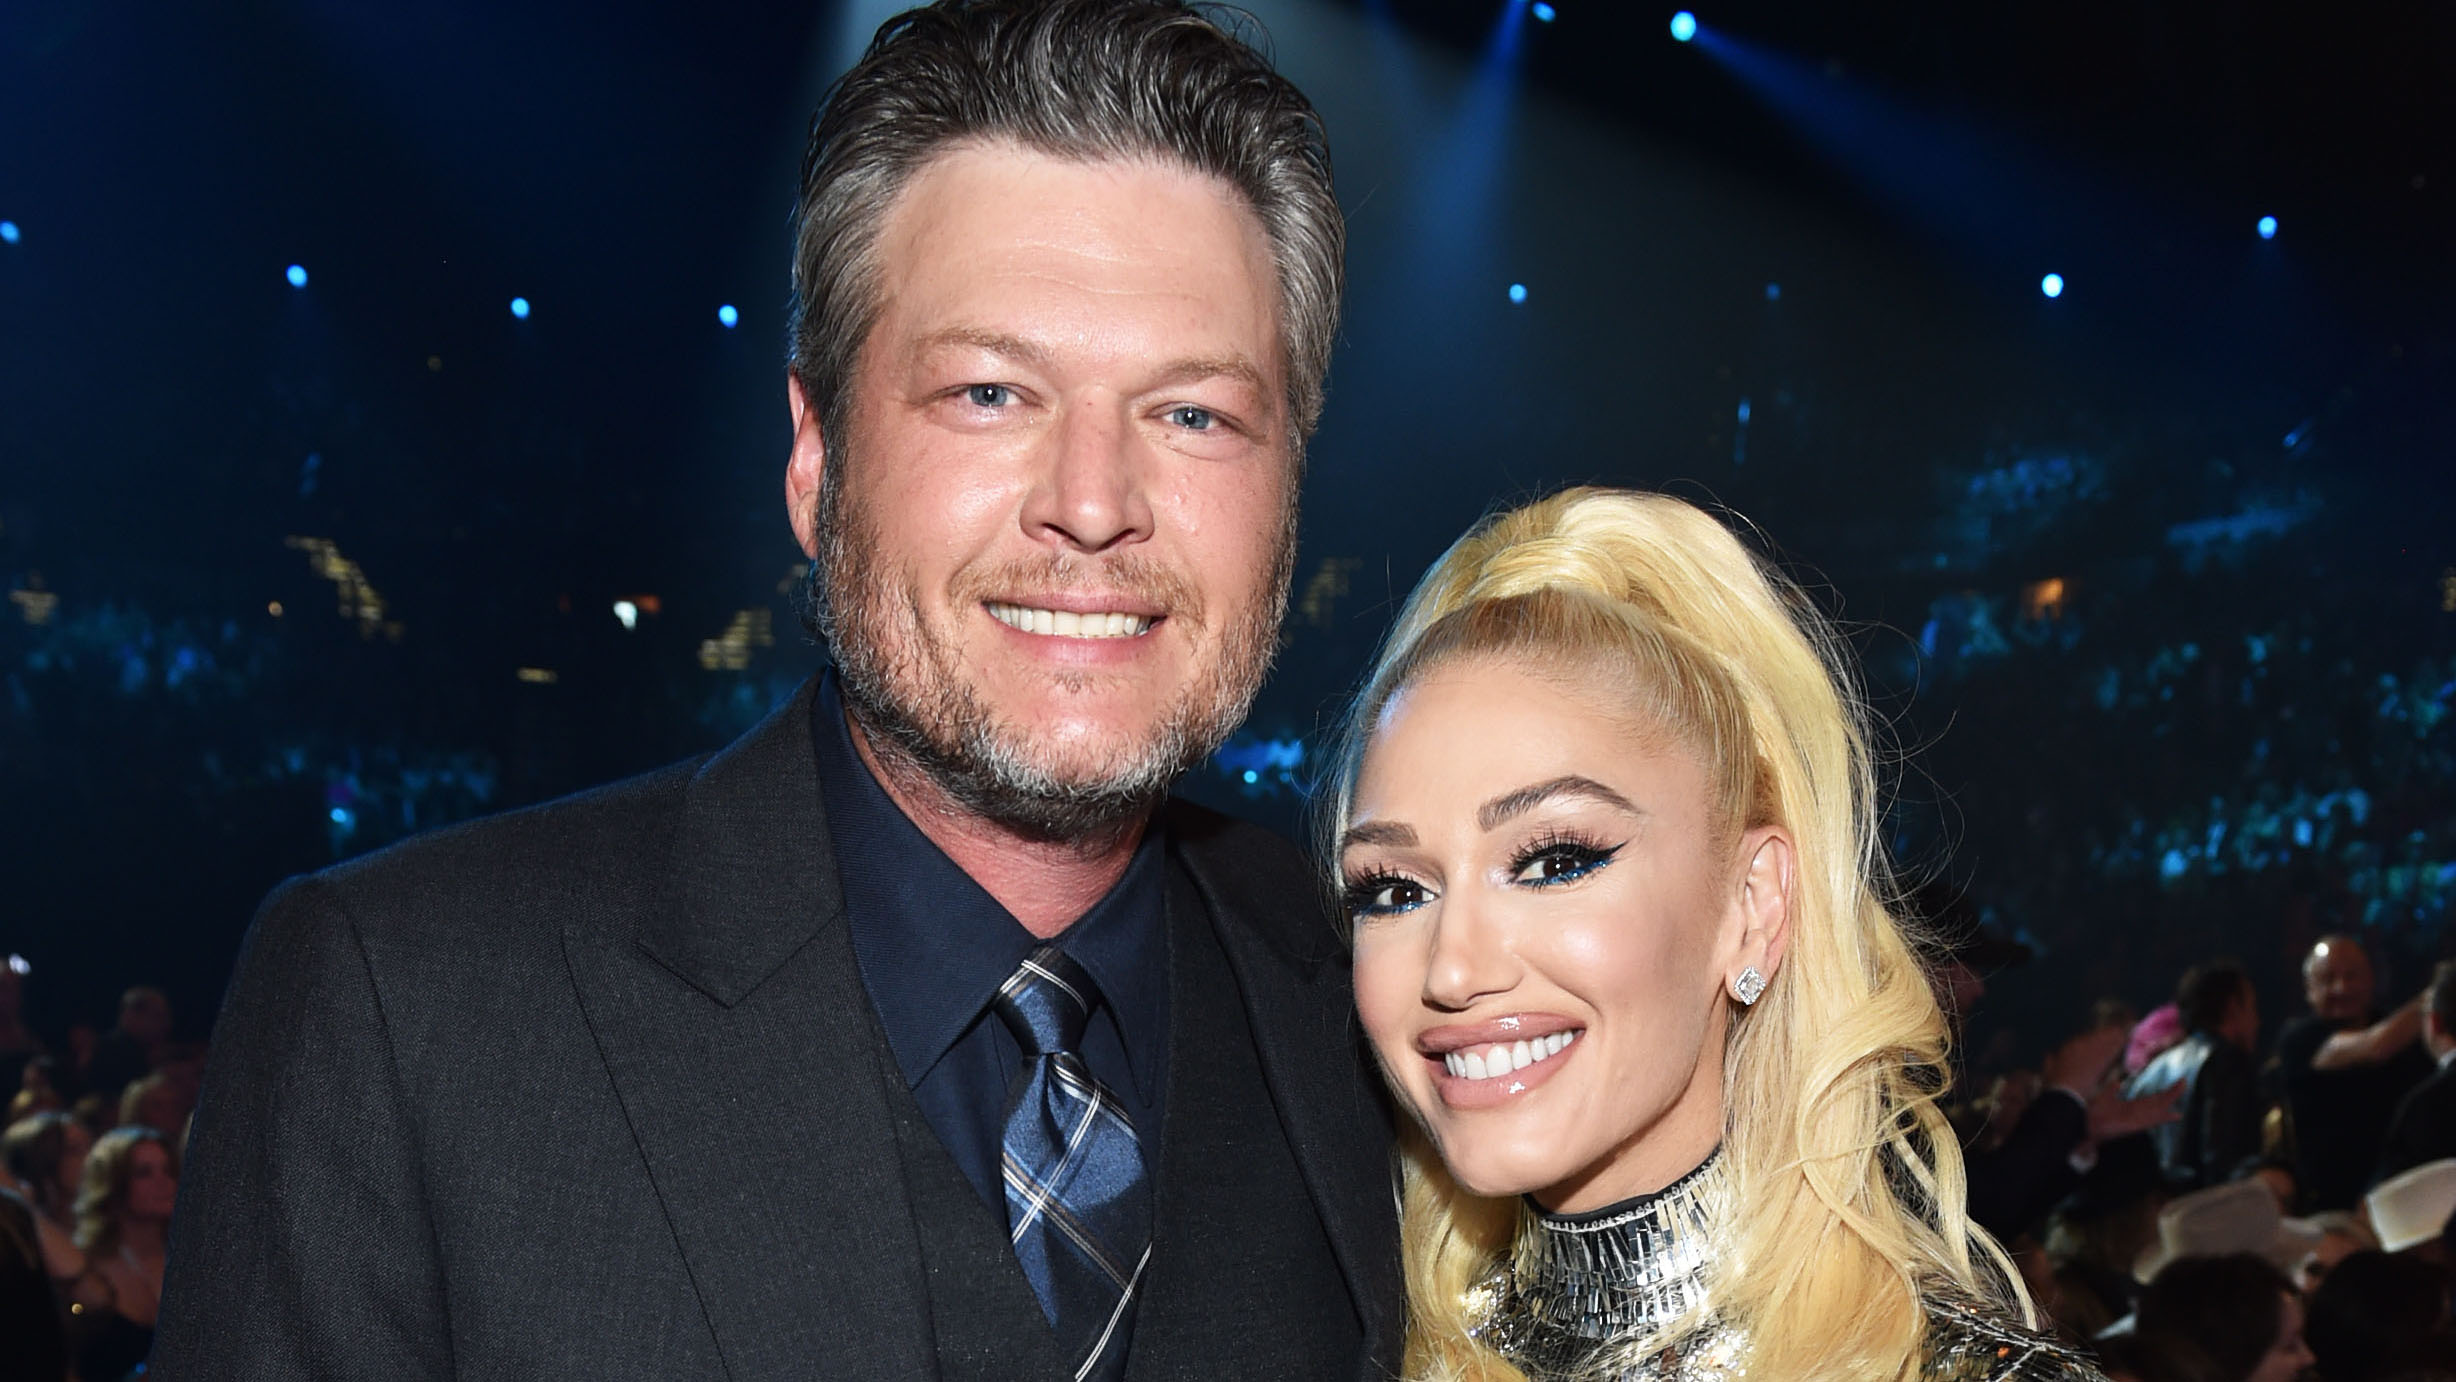 Gwen Stefani Totally Rocks Out To Blake Shelton At The